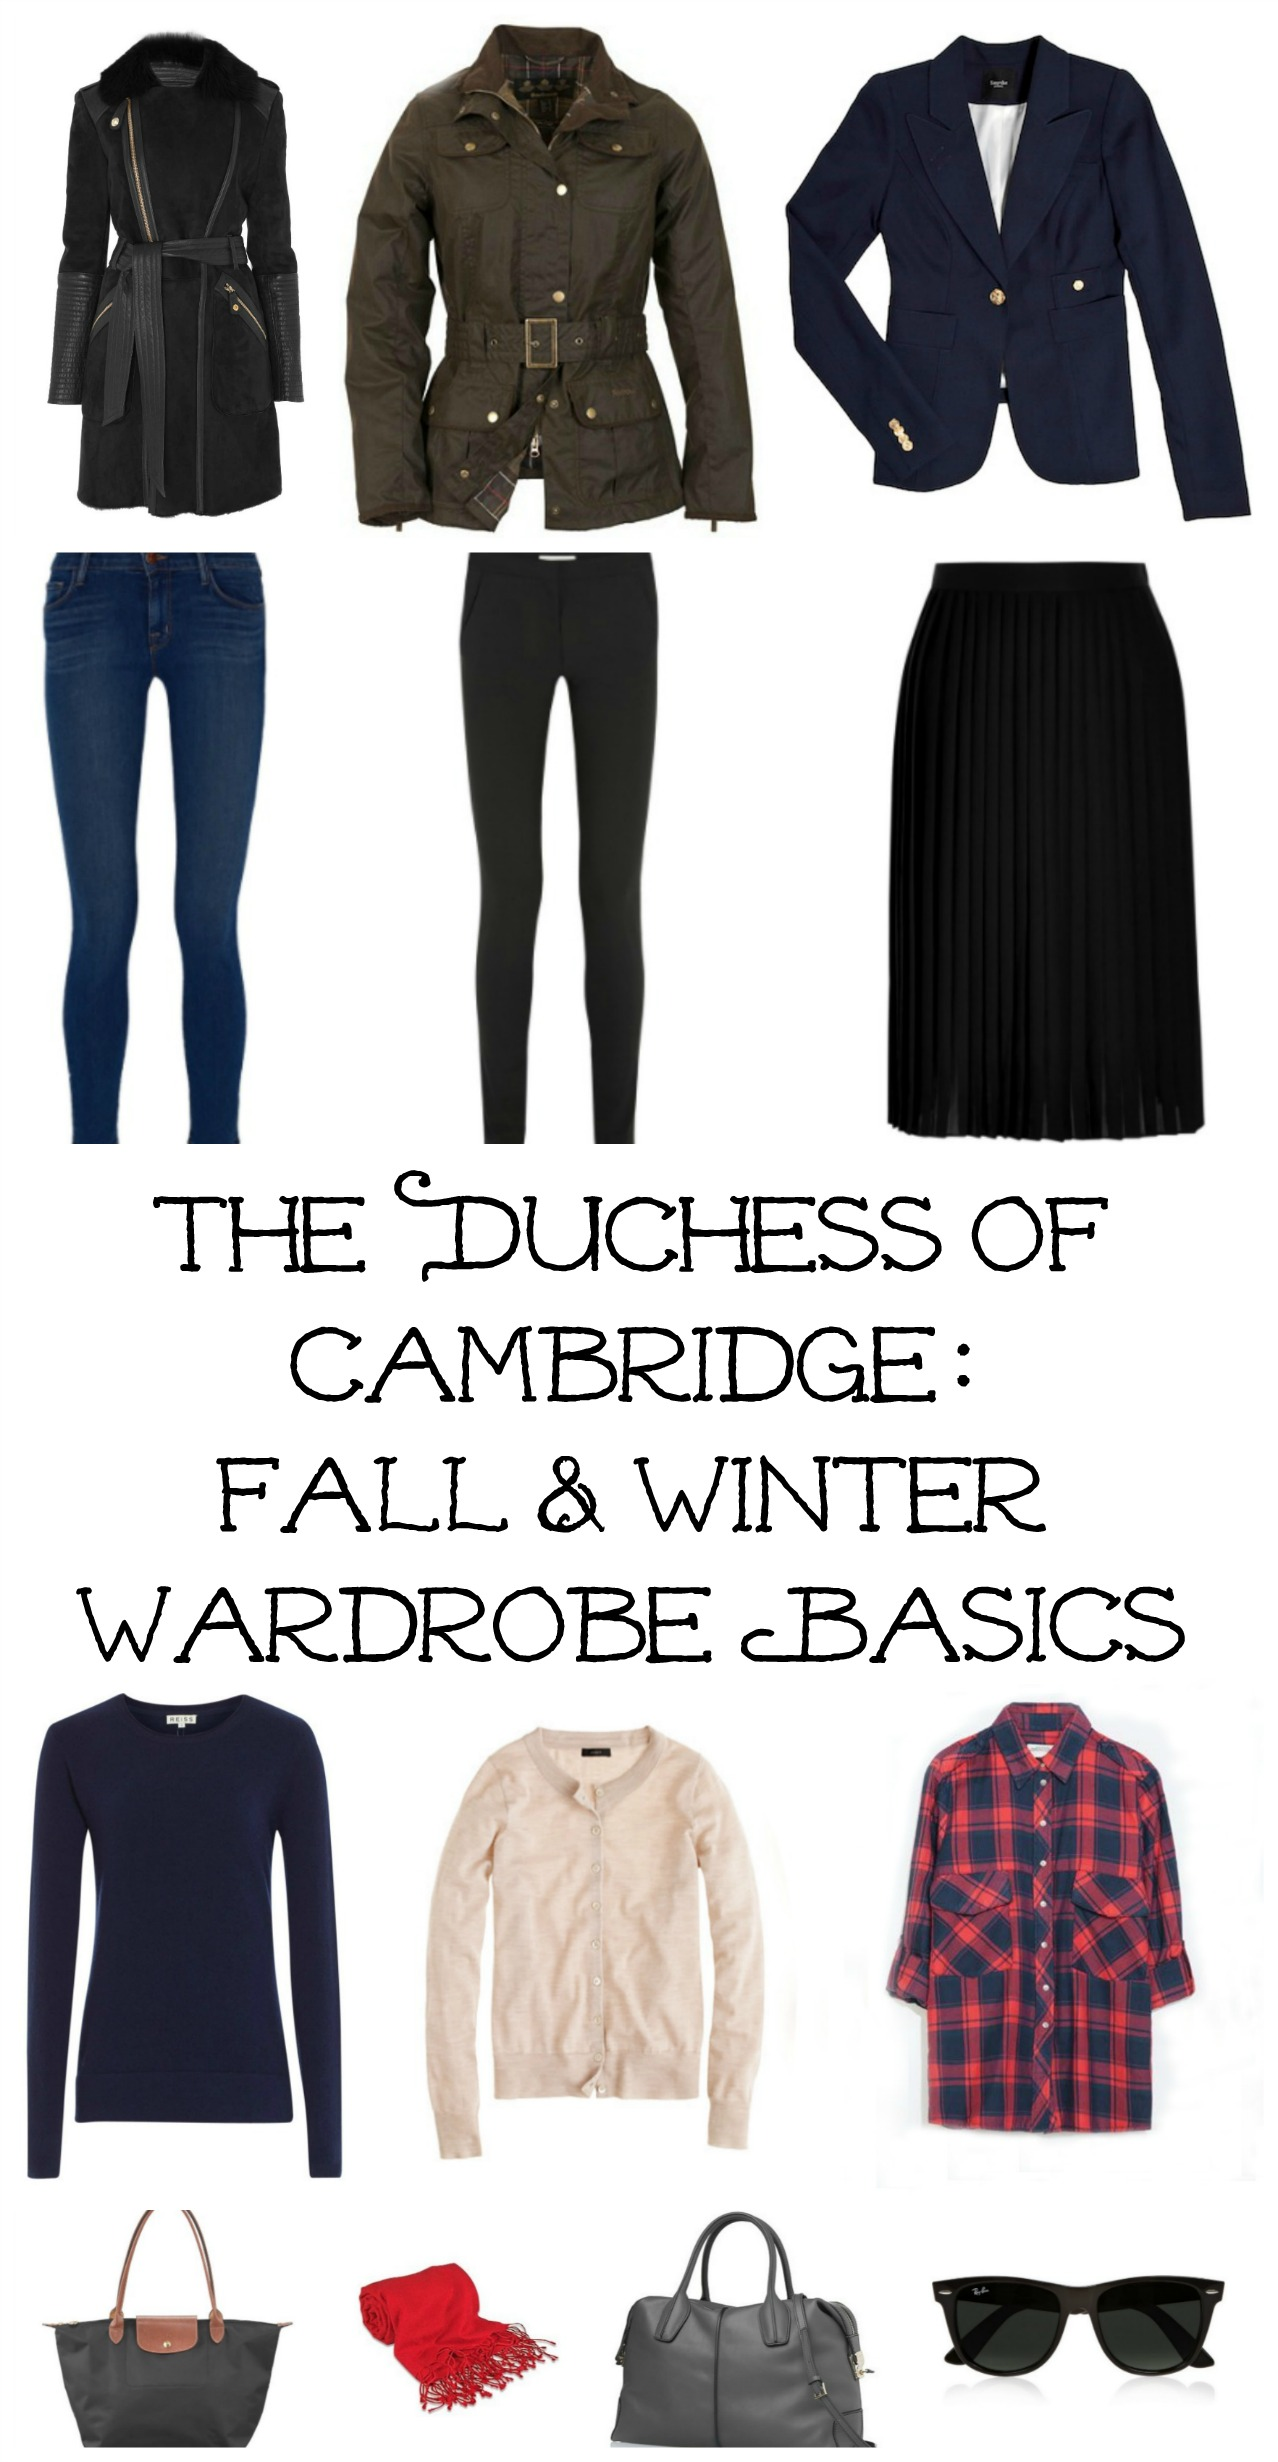 kate s fall winter capsule wardrobe what would kate do